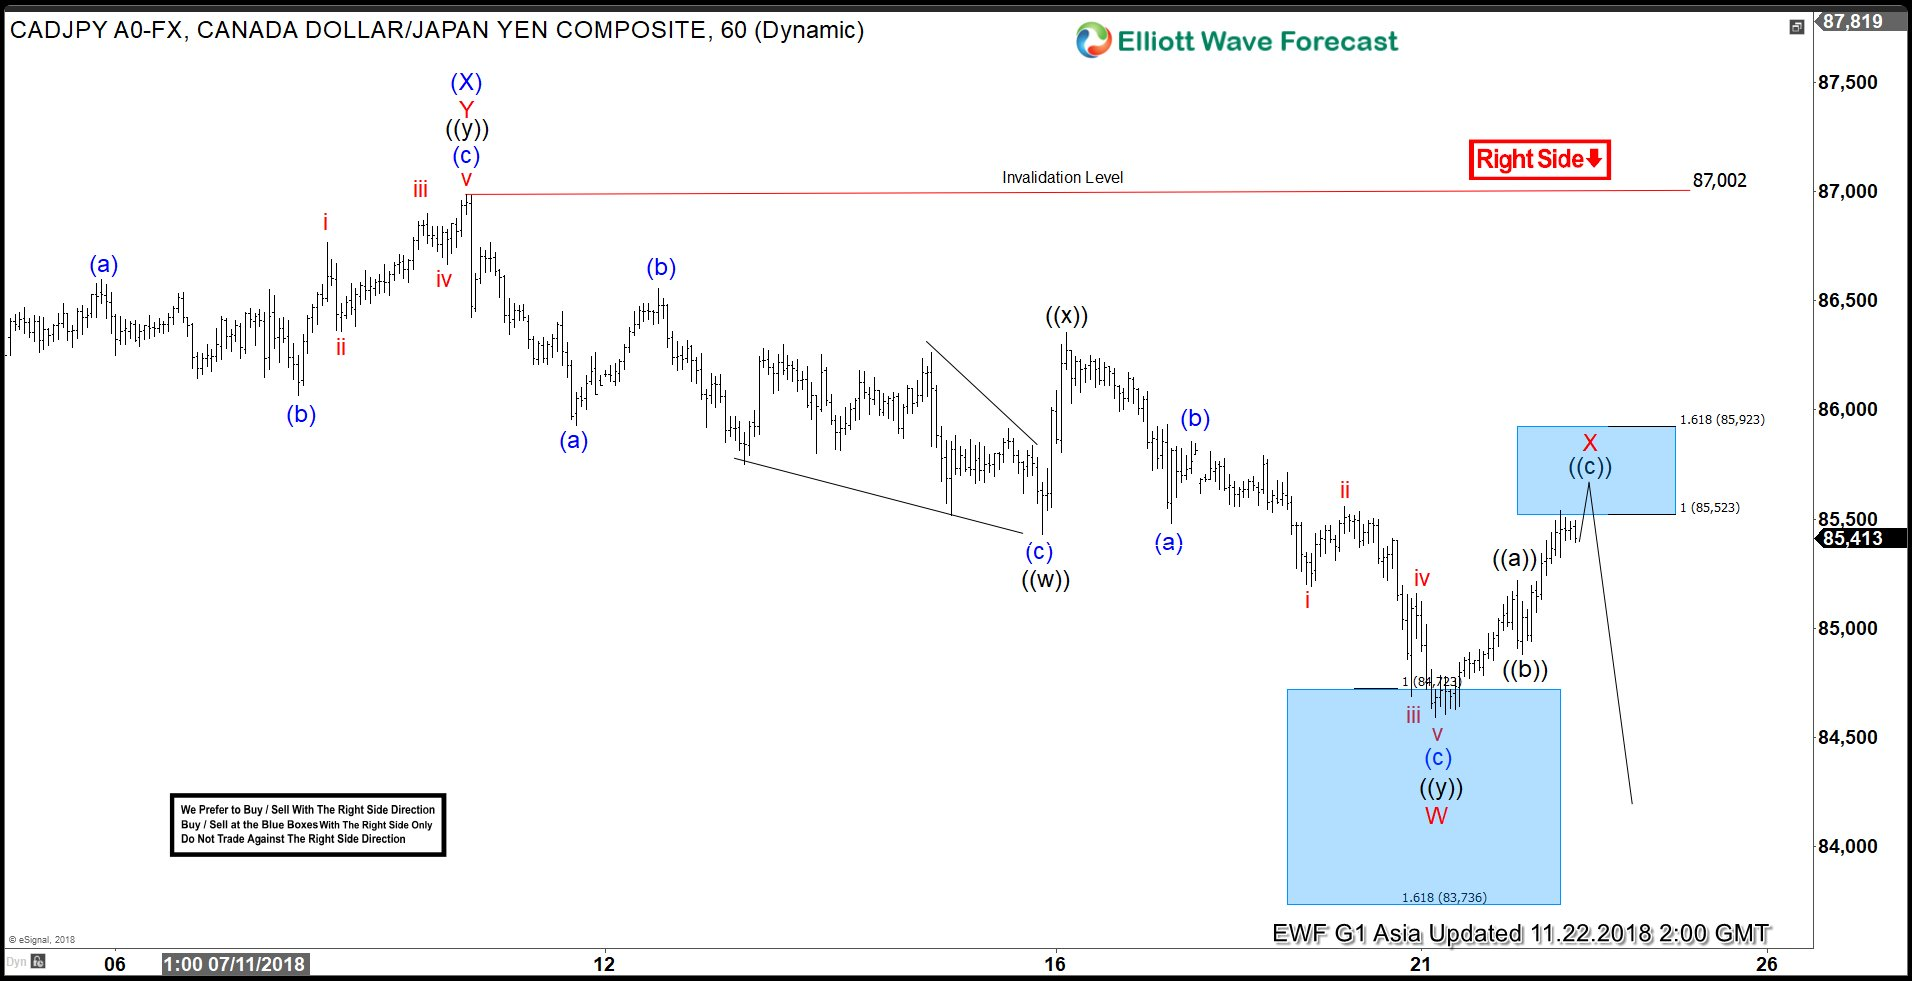 CADJPY Elliott Wave: Incomplete Sequence Calling Lower